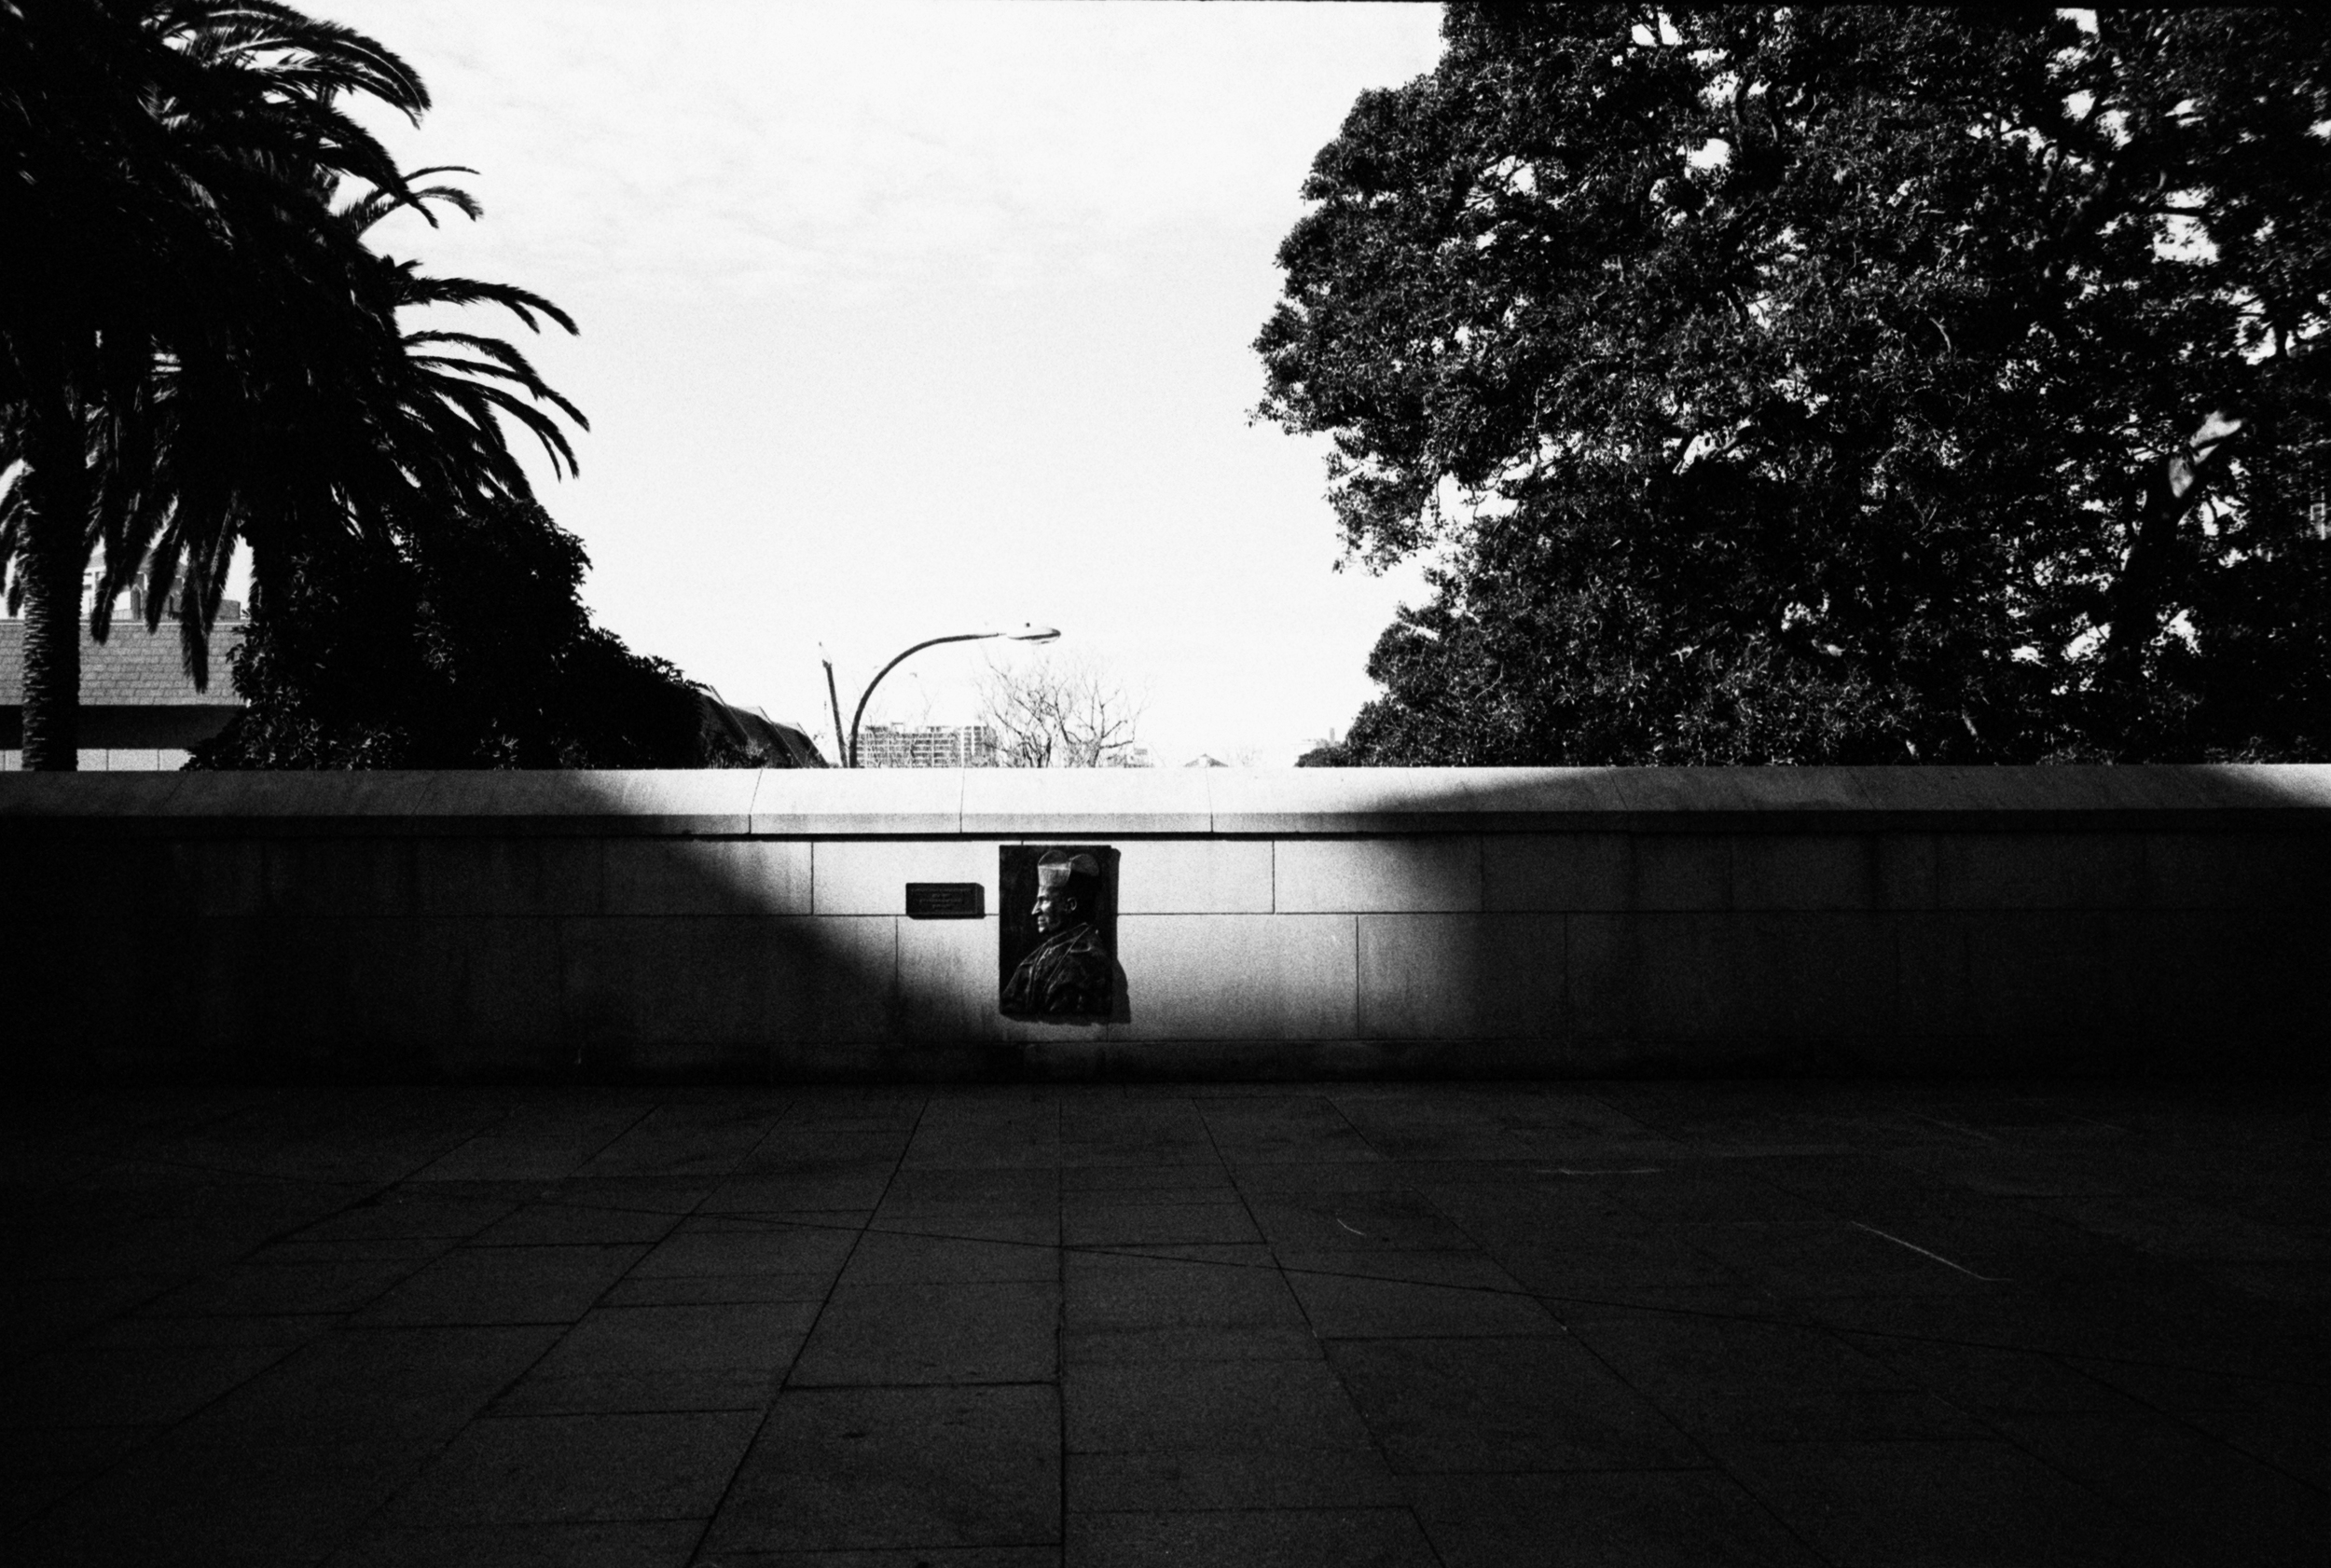 The Sydney Condition 34 - Ada  m Abdul Rahim © 2013.   All rights reserved.